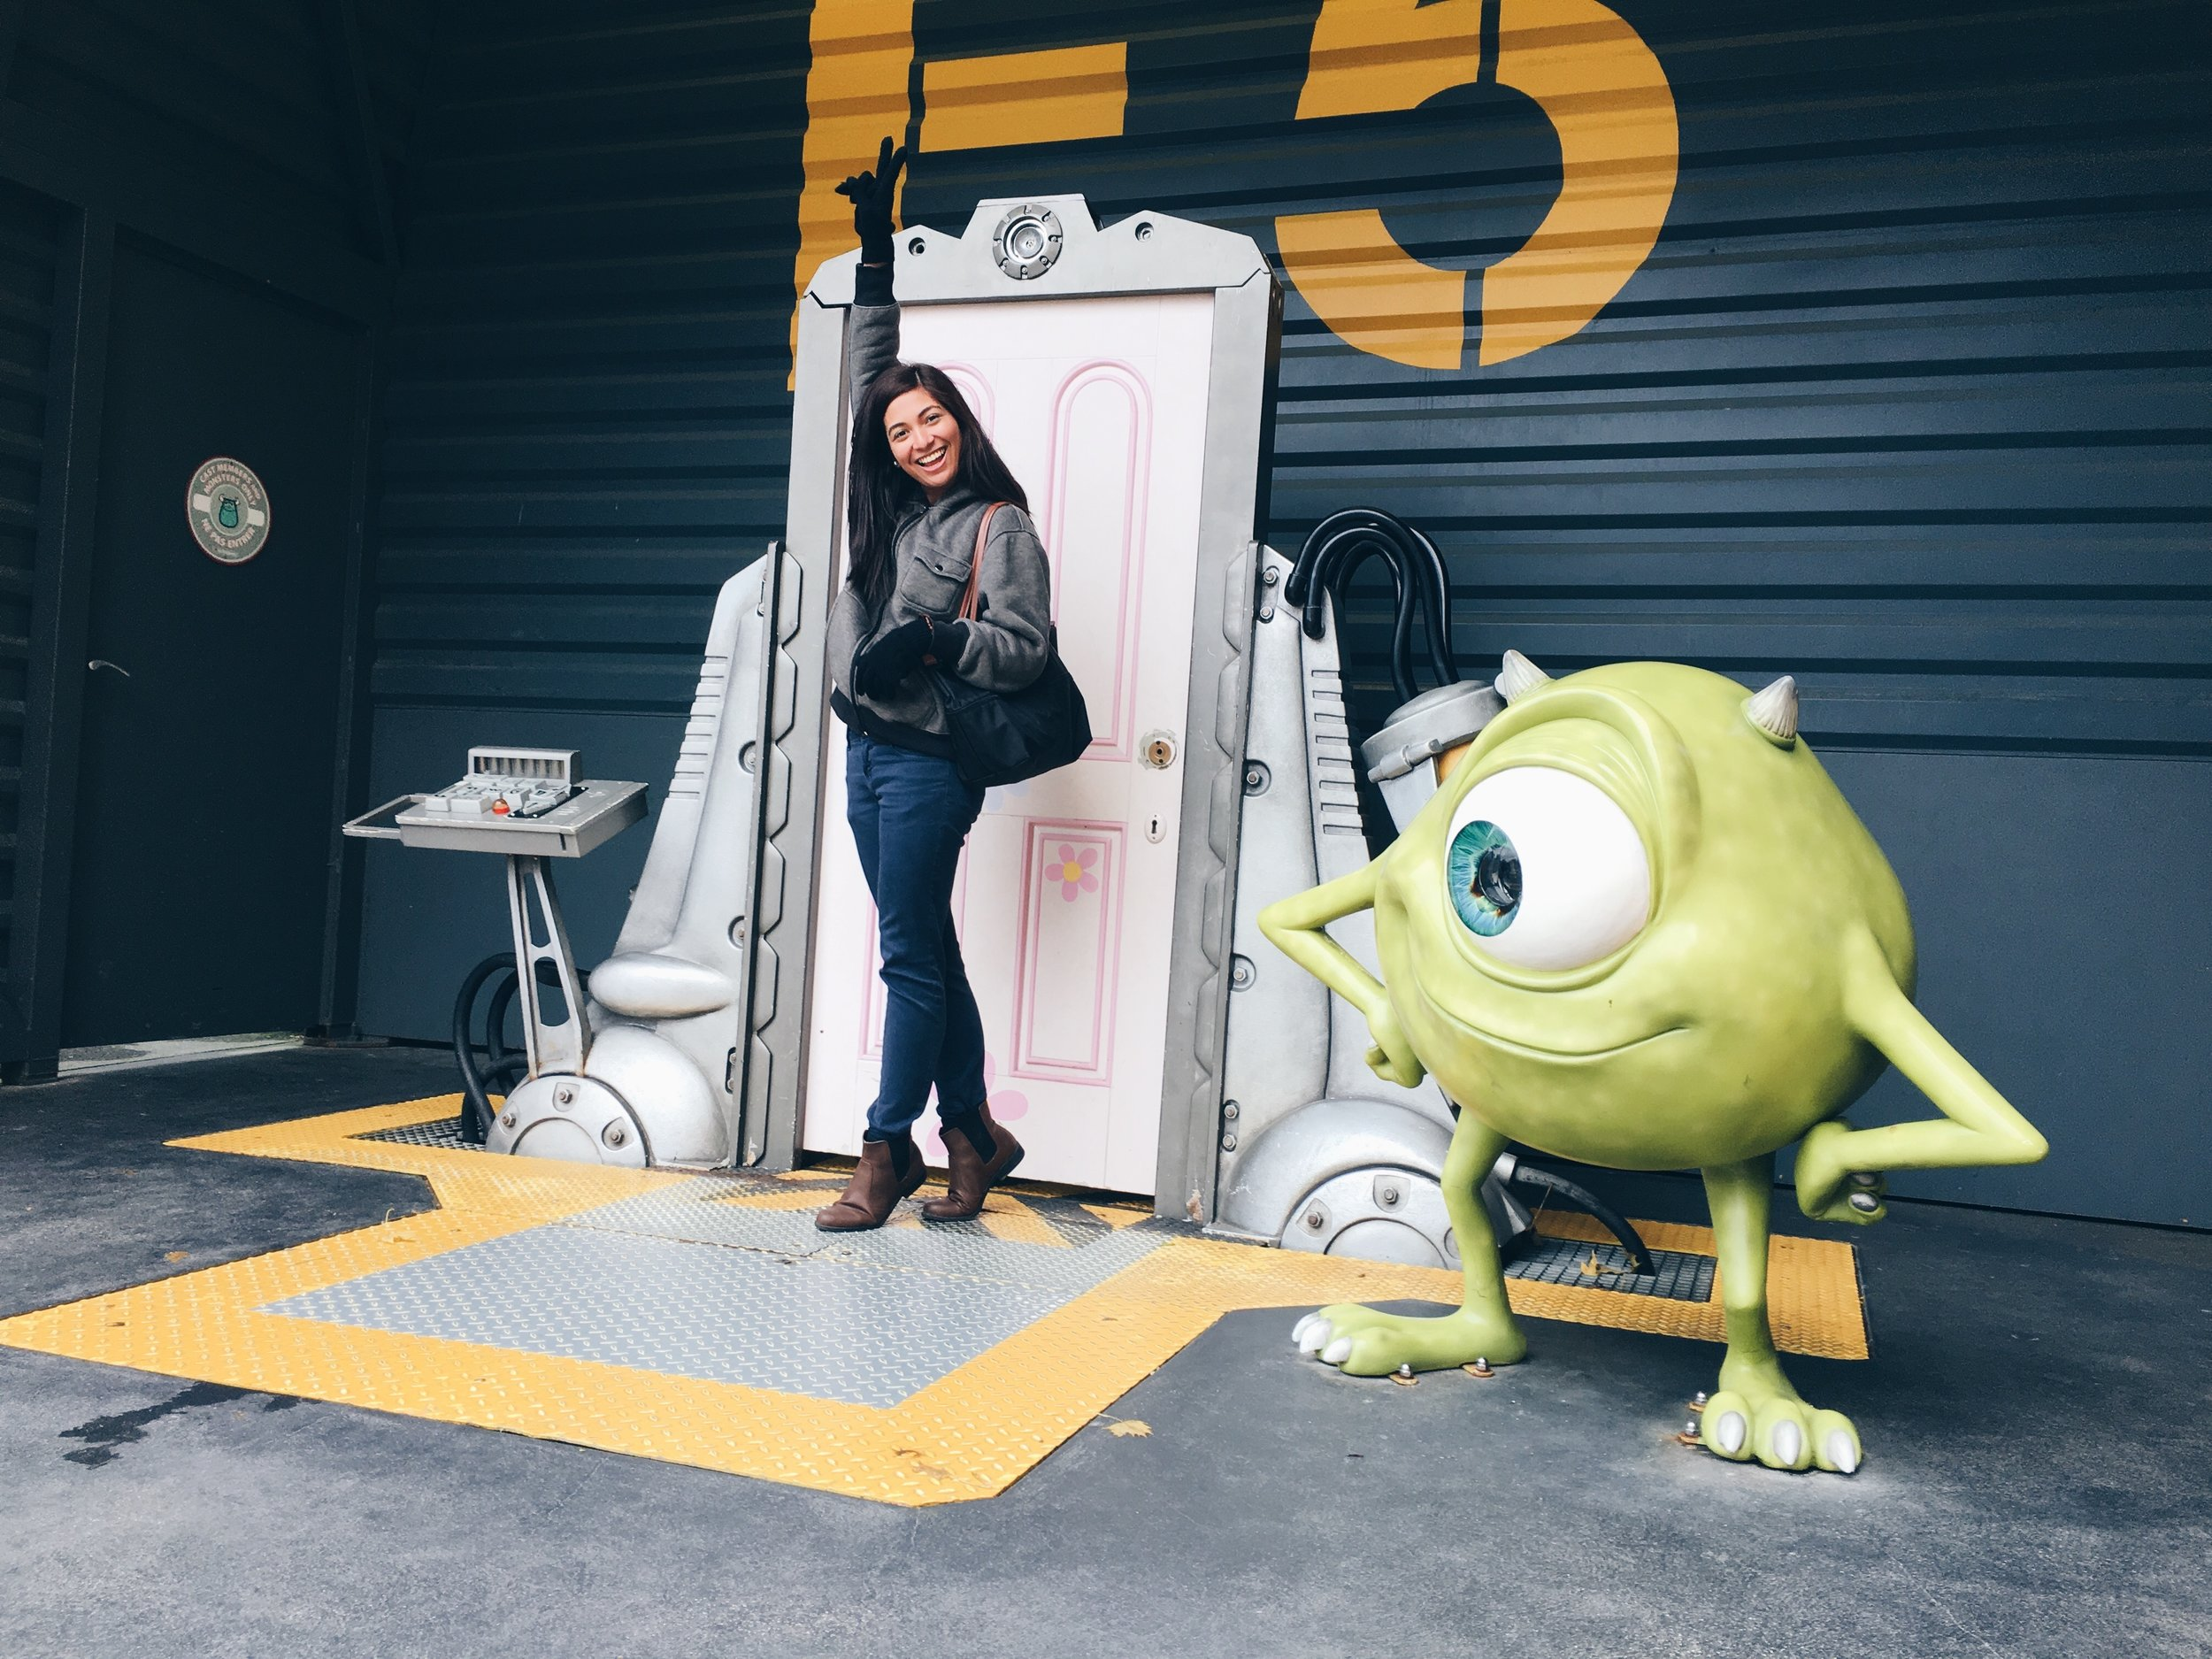 roxci monsters inc disneyland paris.JPG